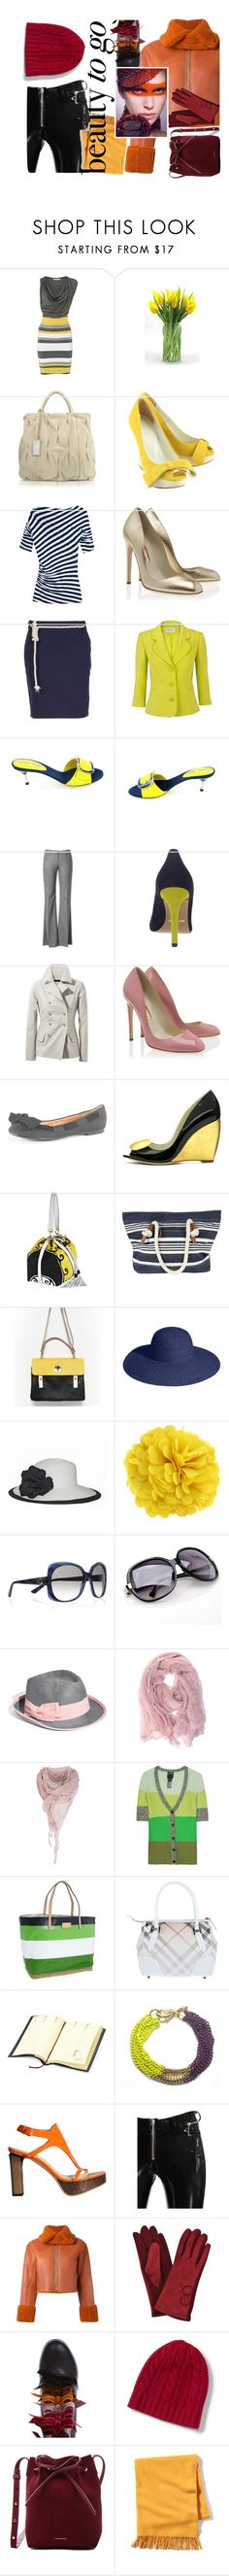 """""""ready"""" by marbau ❤ liked on Polyvore featuring Coccinelle, Vivienne Westwood Anglomania, Rupert Sanderson, Golden Classic, Libertine-Libertine, Precis Petite, Funtasma, Theory, Carvela and Uniqlo"""